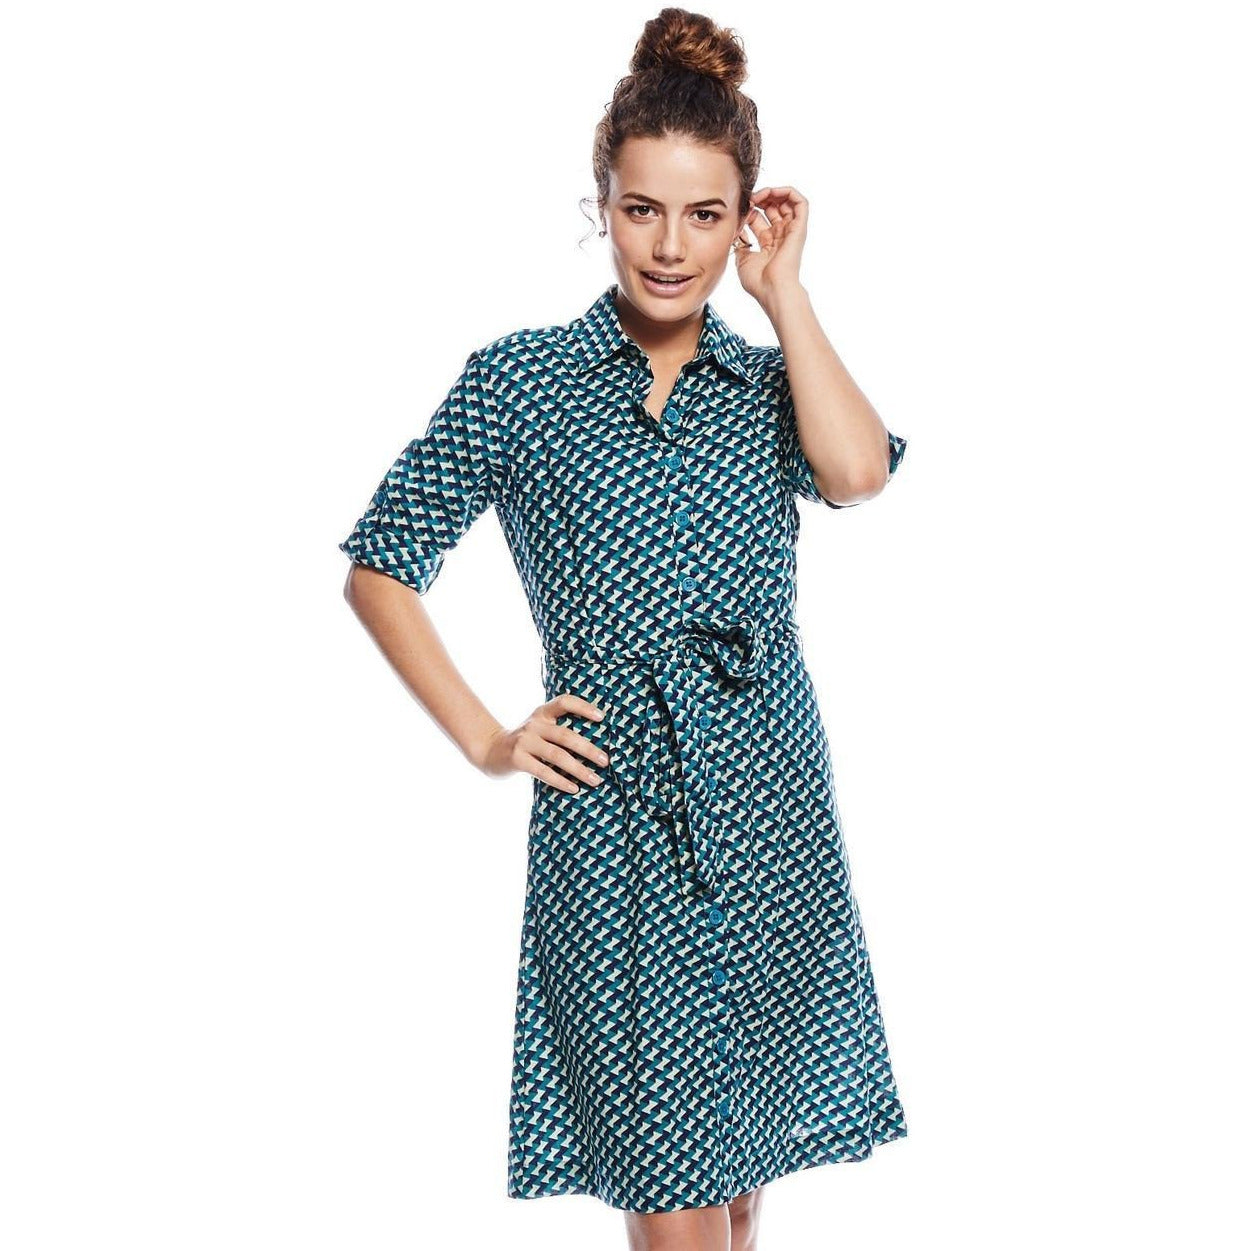 MahaShe Savanna Shirt dress in Badu  print